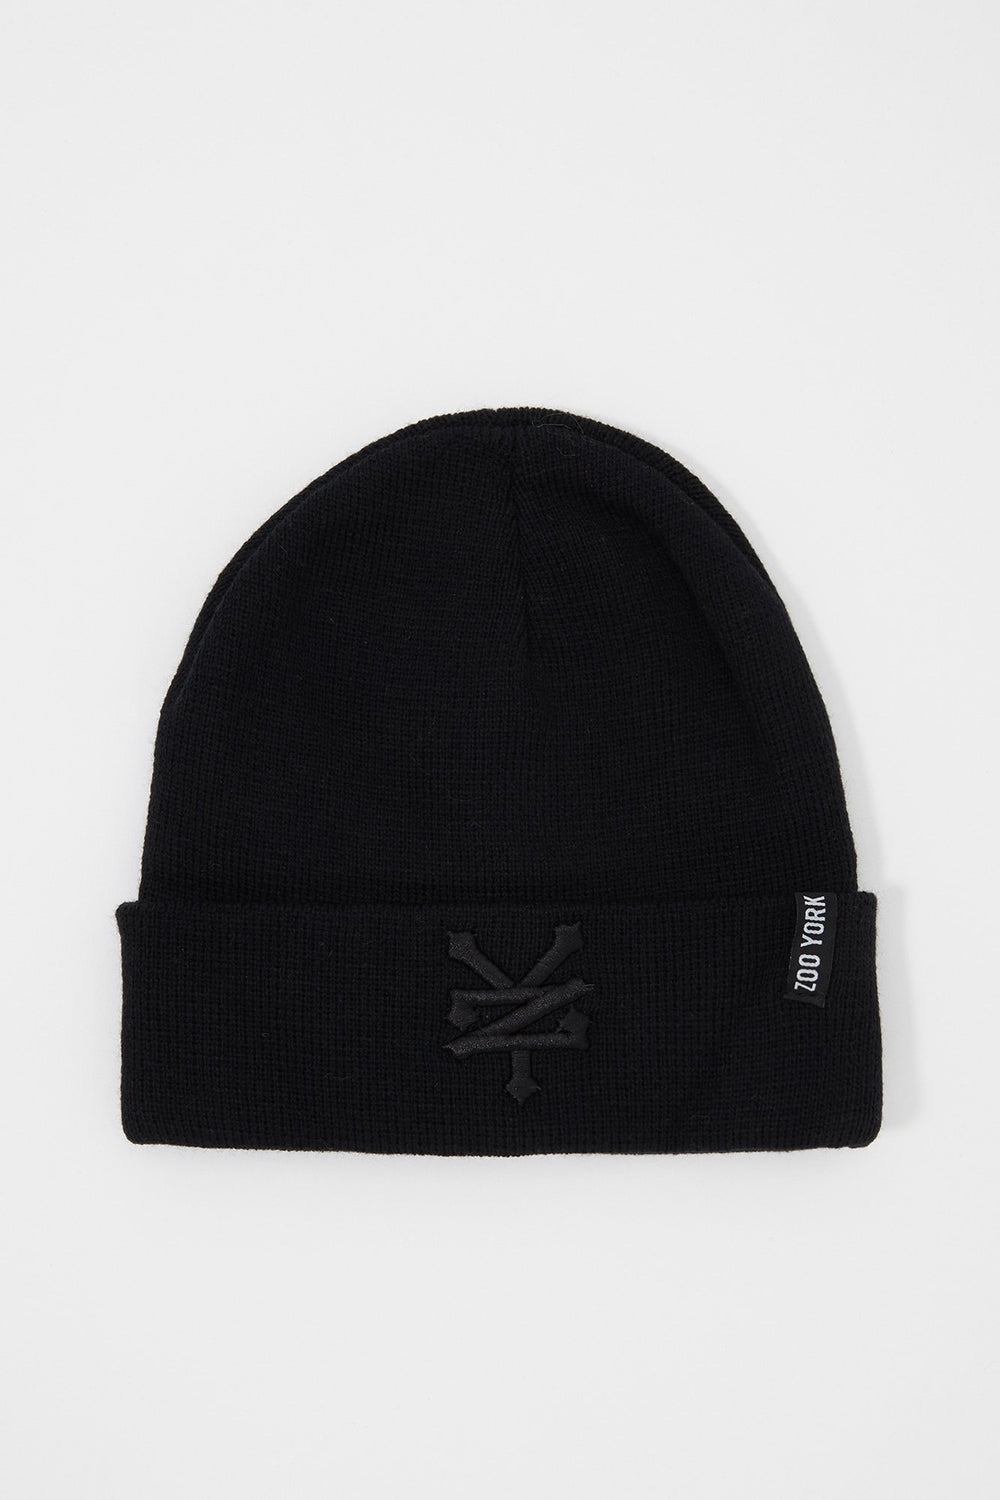 Zoo York Mens Embroidered Beanie Black